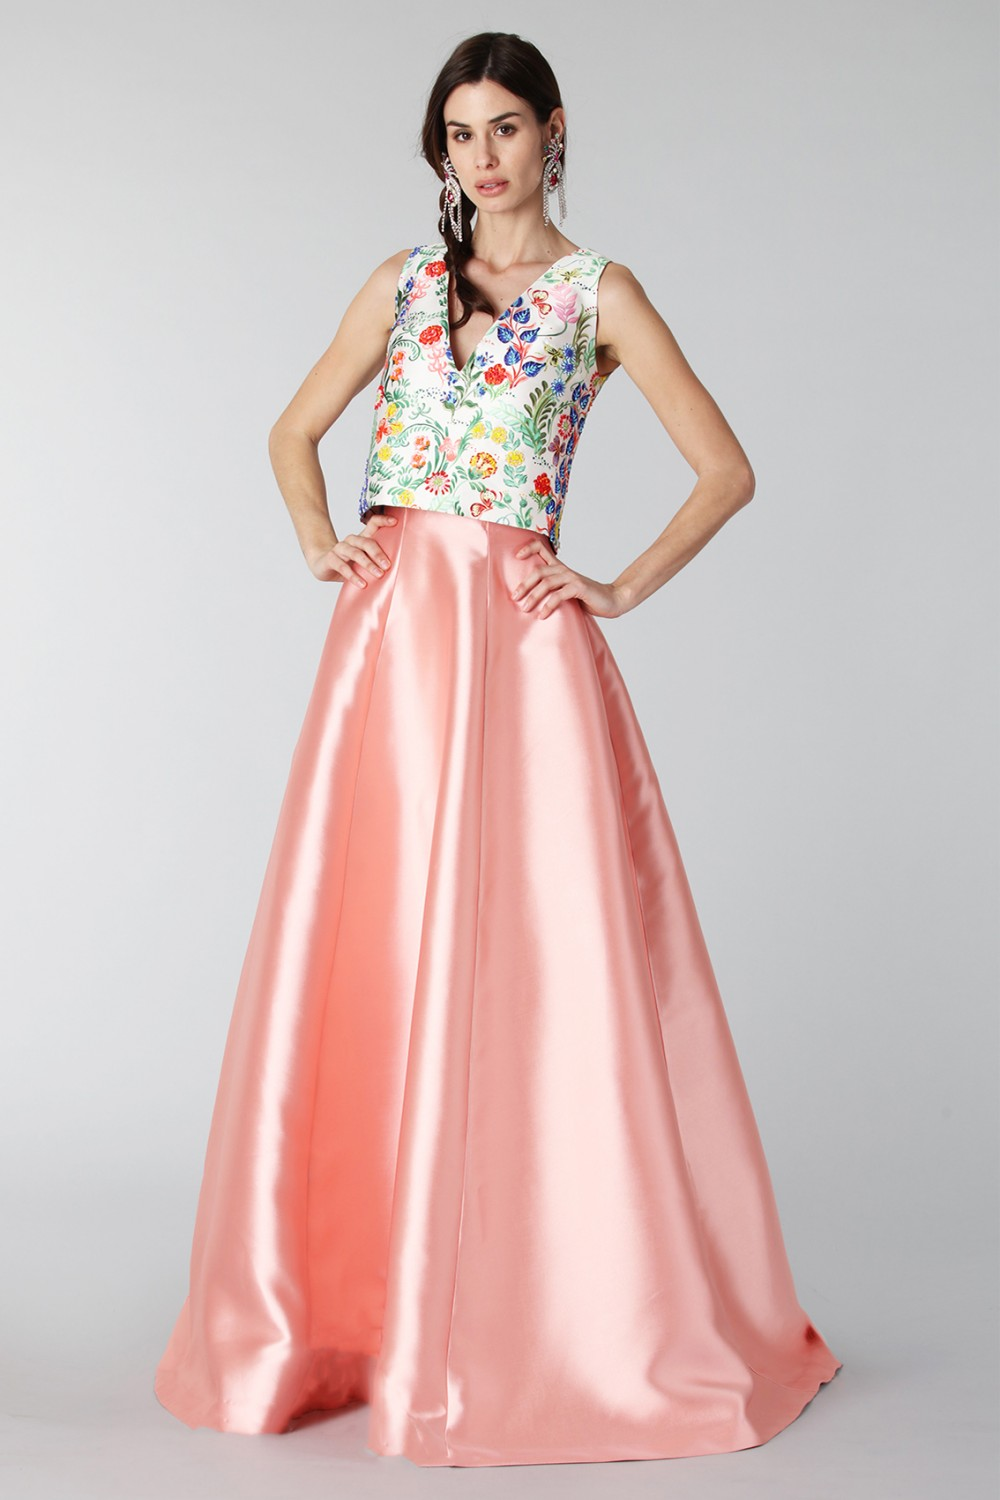 Complete pink skirt and floral top in silk